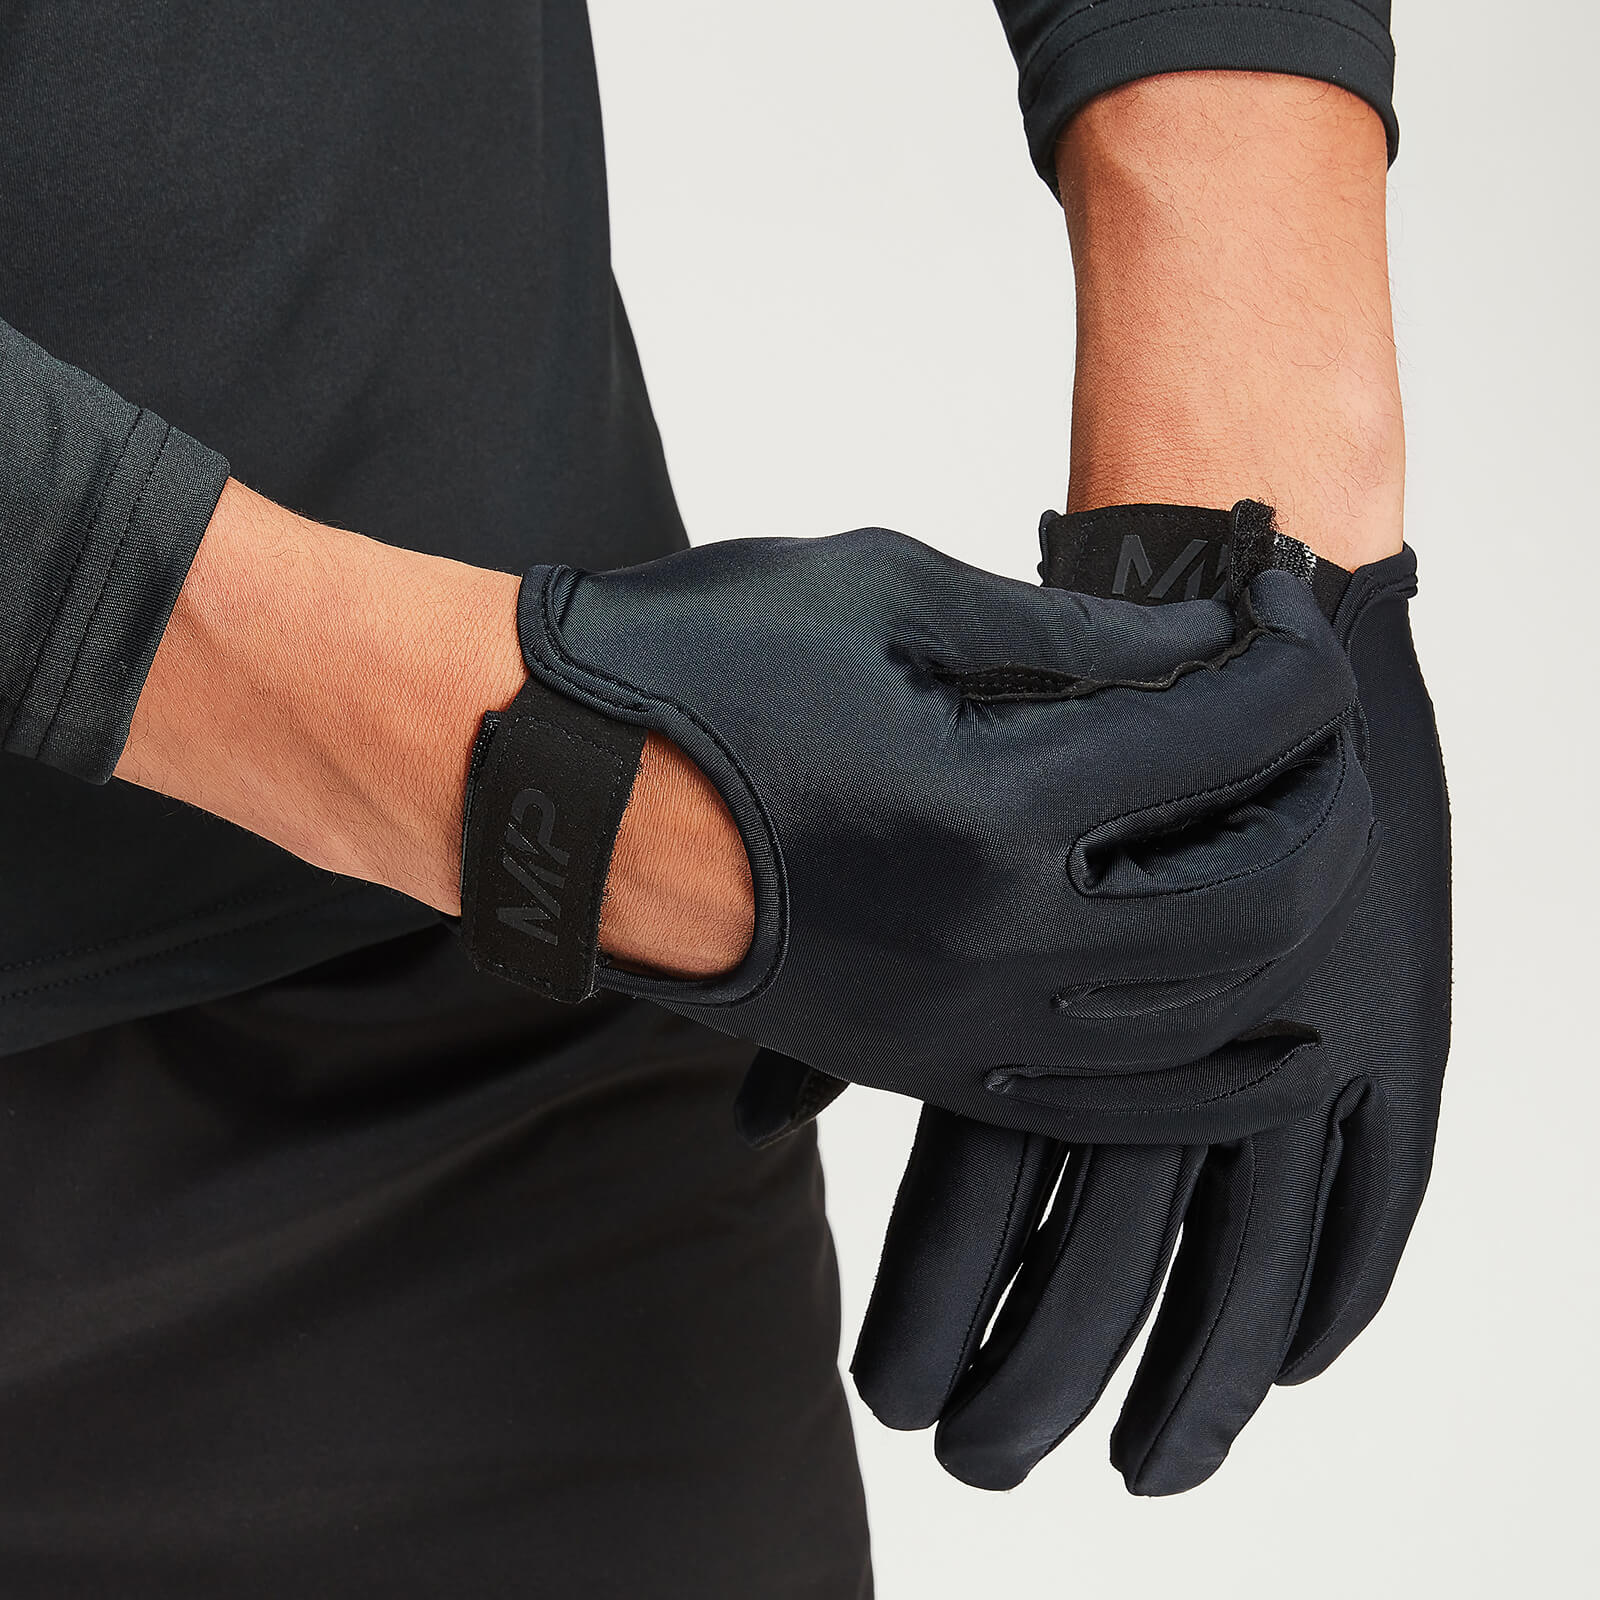 MP Men's Full Coverage Lifting Gloves - Black - L von MP